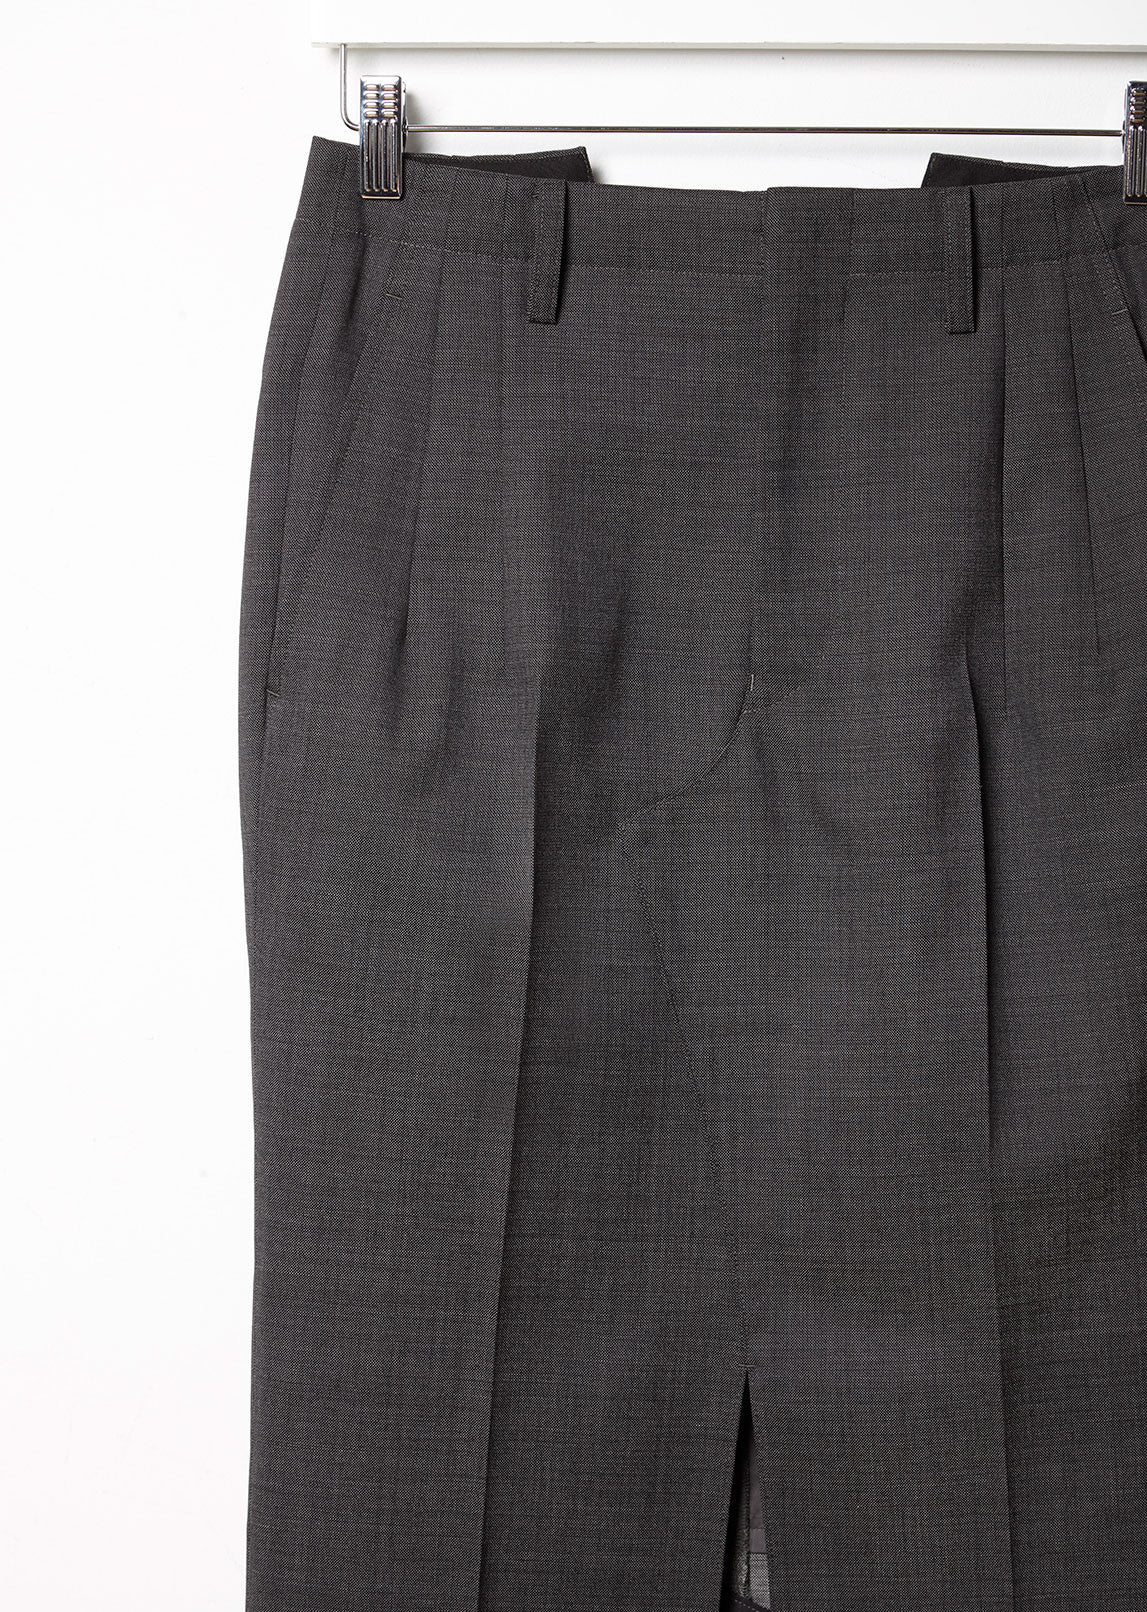 Wool Twill Skirt